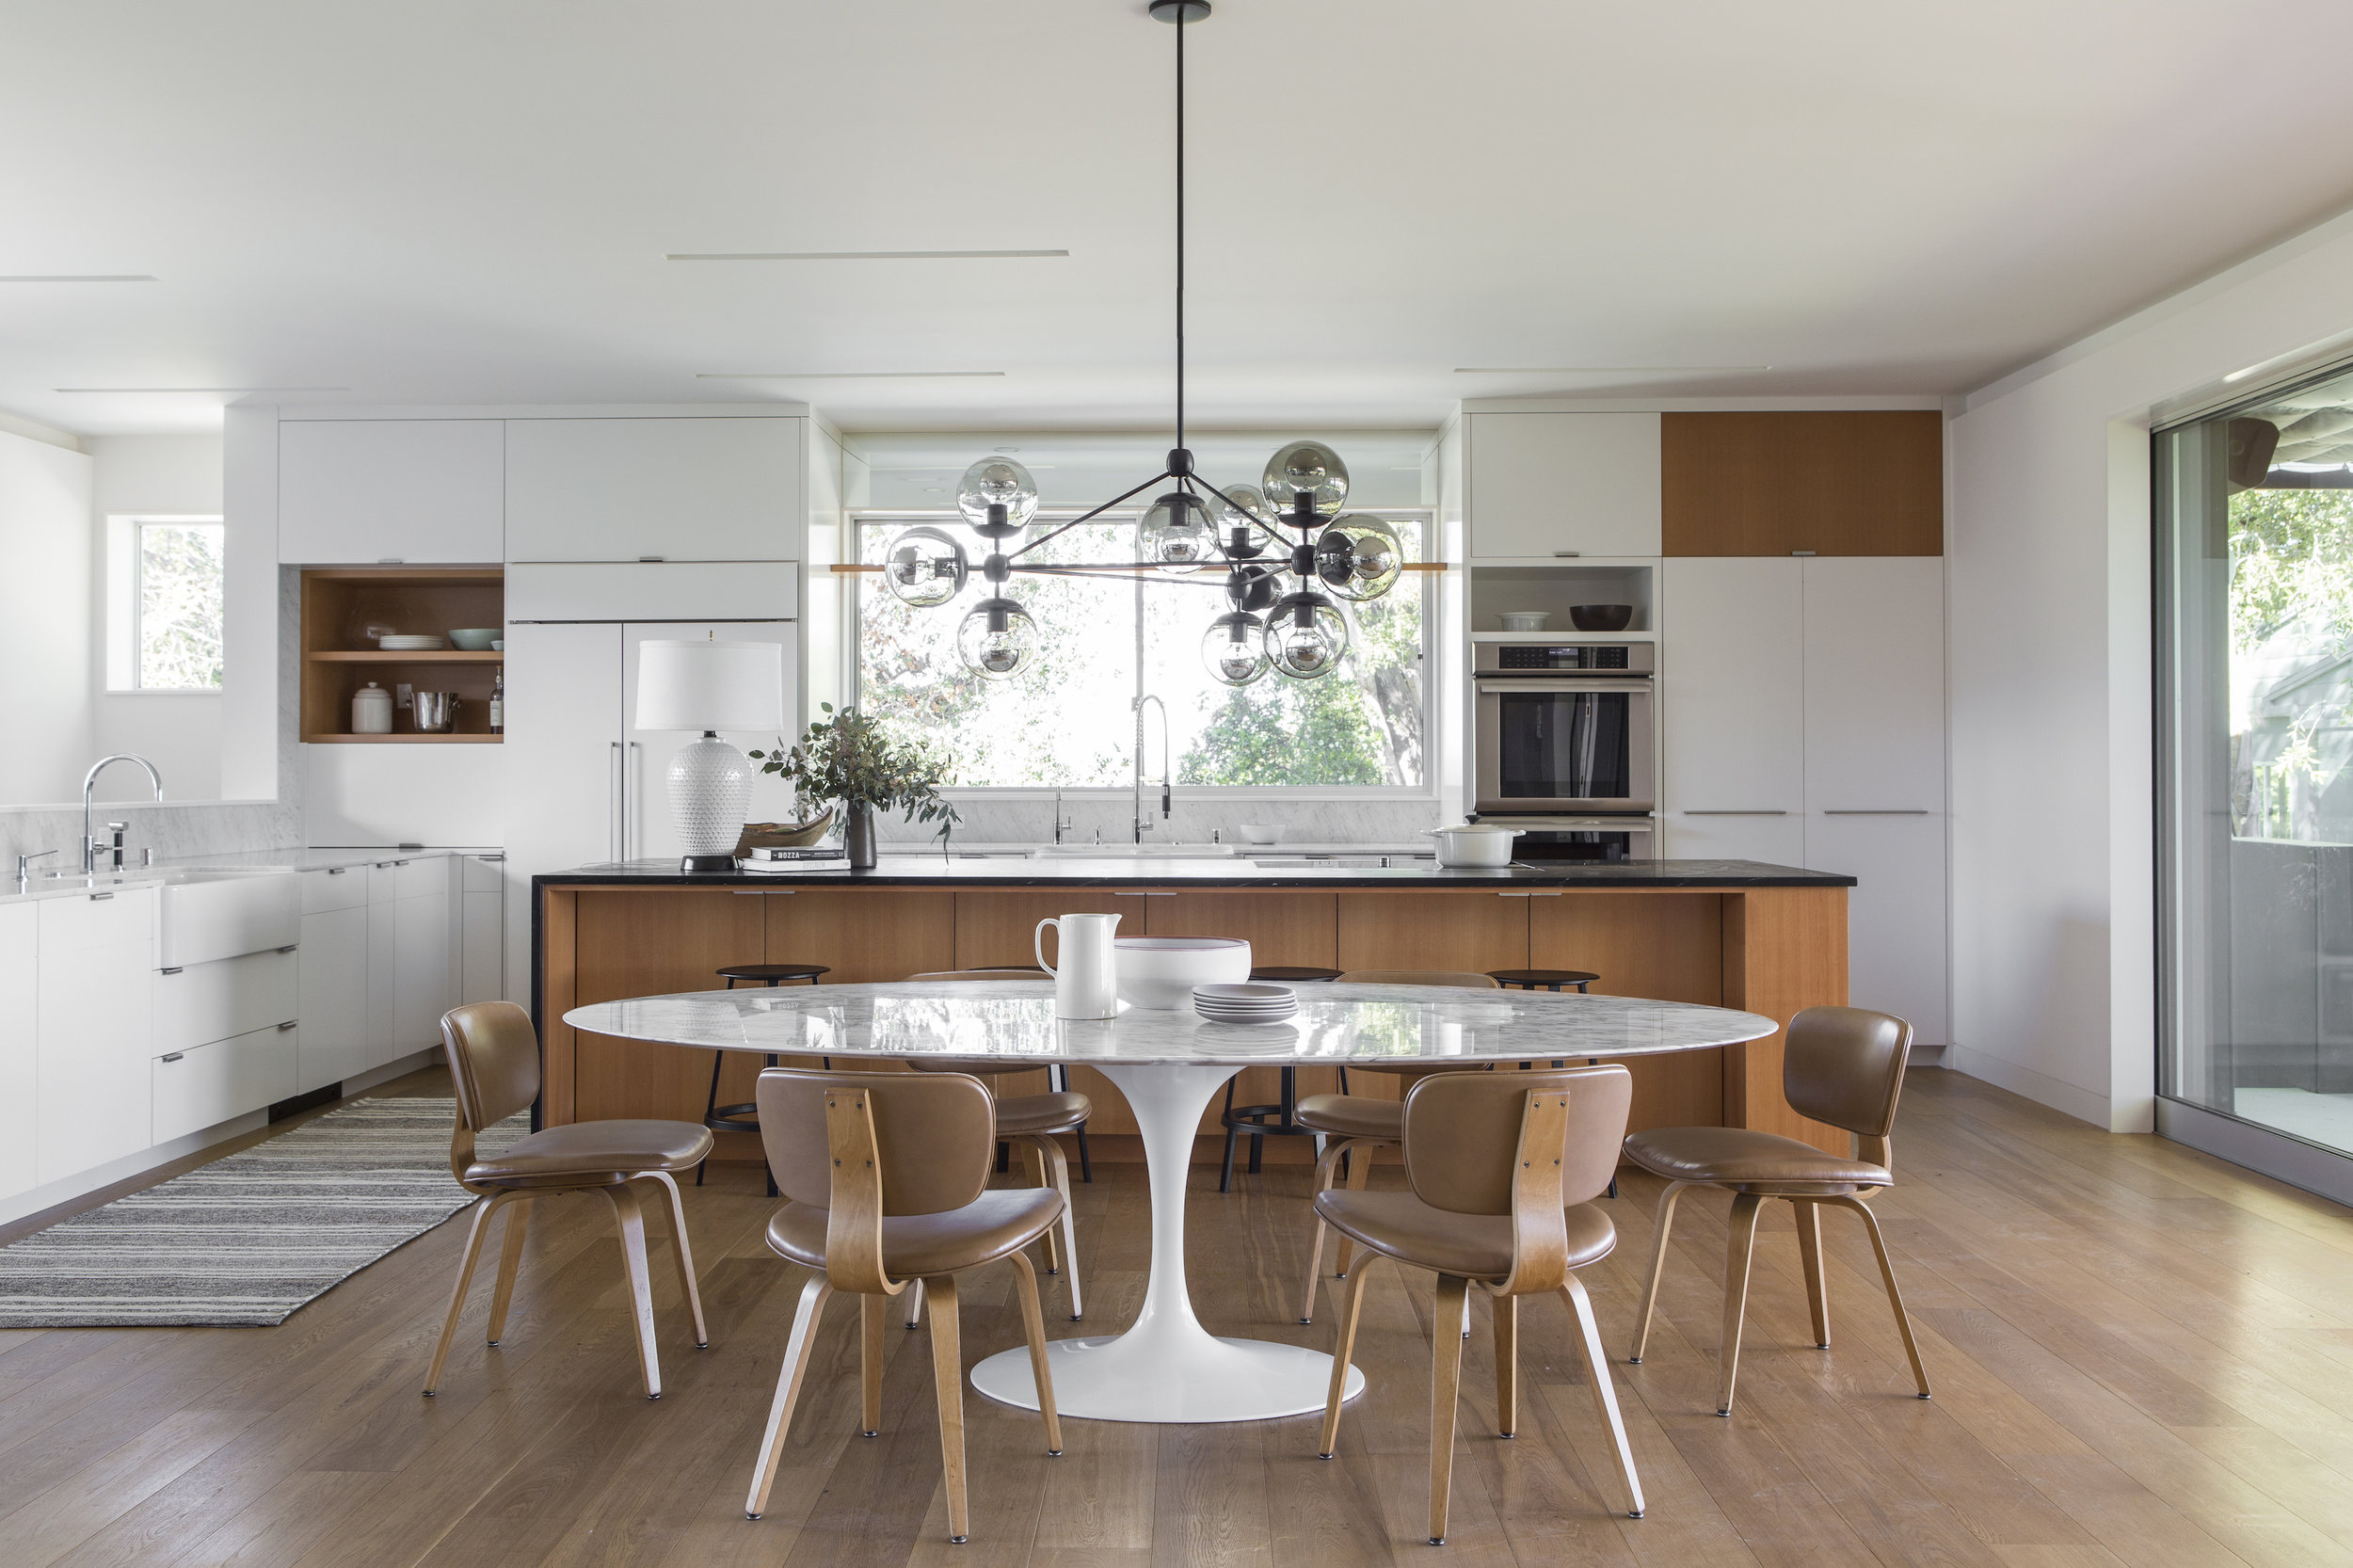 Dolan-House-LA-Barbara-Bestor-and-Disc-Interiors-Laure-Joliet-photo-Remodelista-Remodelista-2